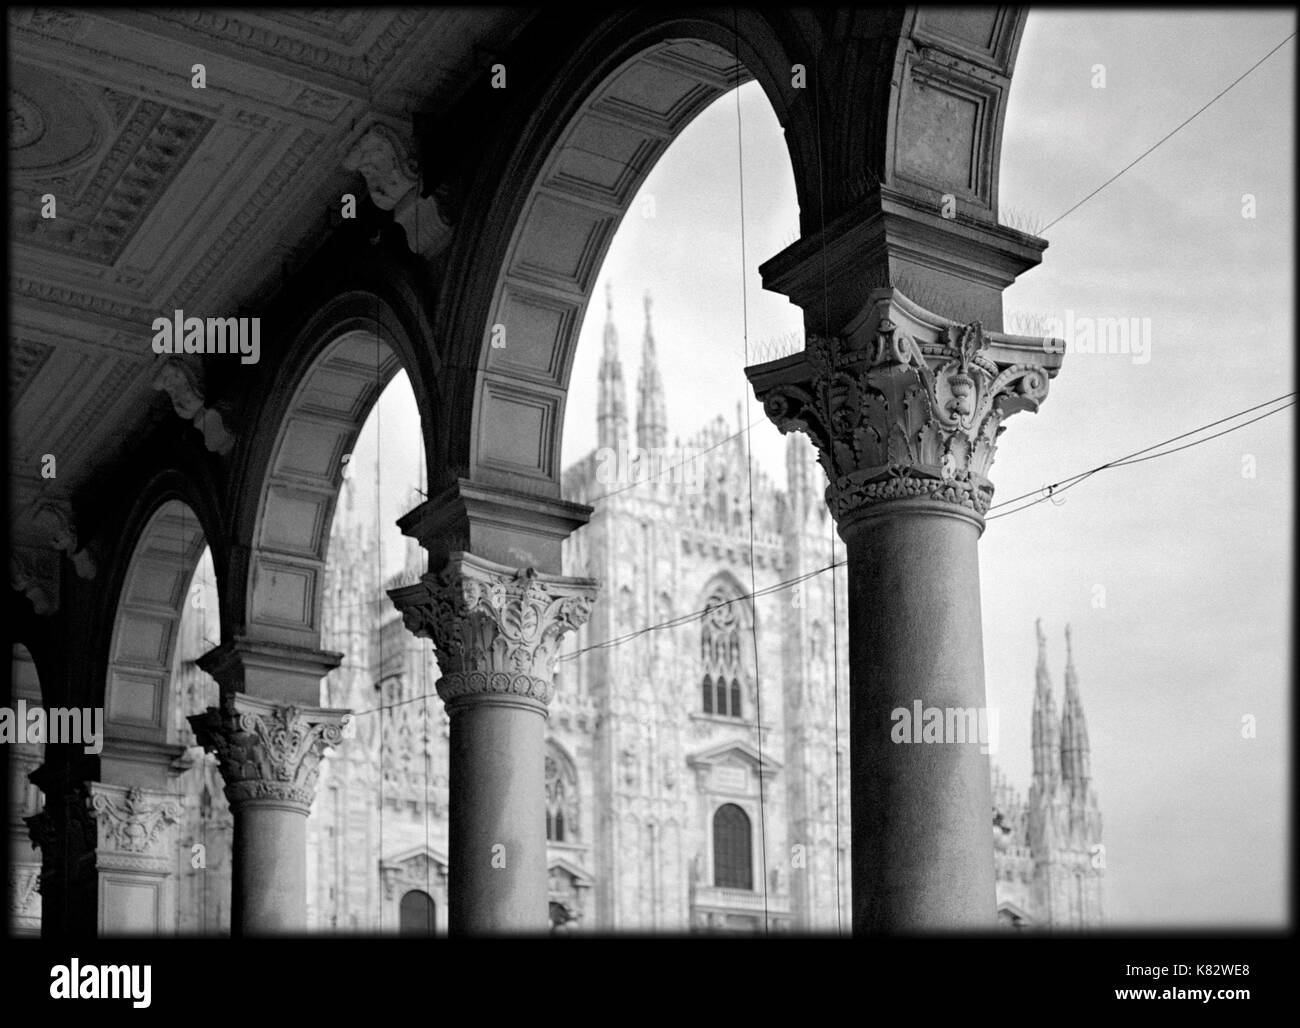 Italy, Lombardy, Milan, View Of The Duomo Through Columns - Stock Image